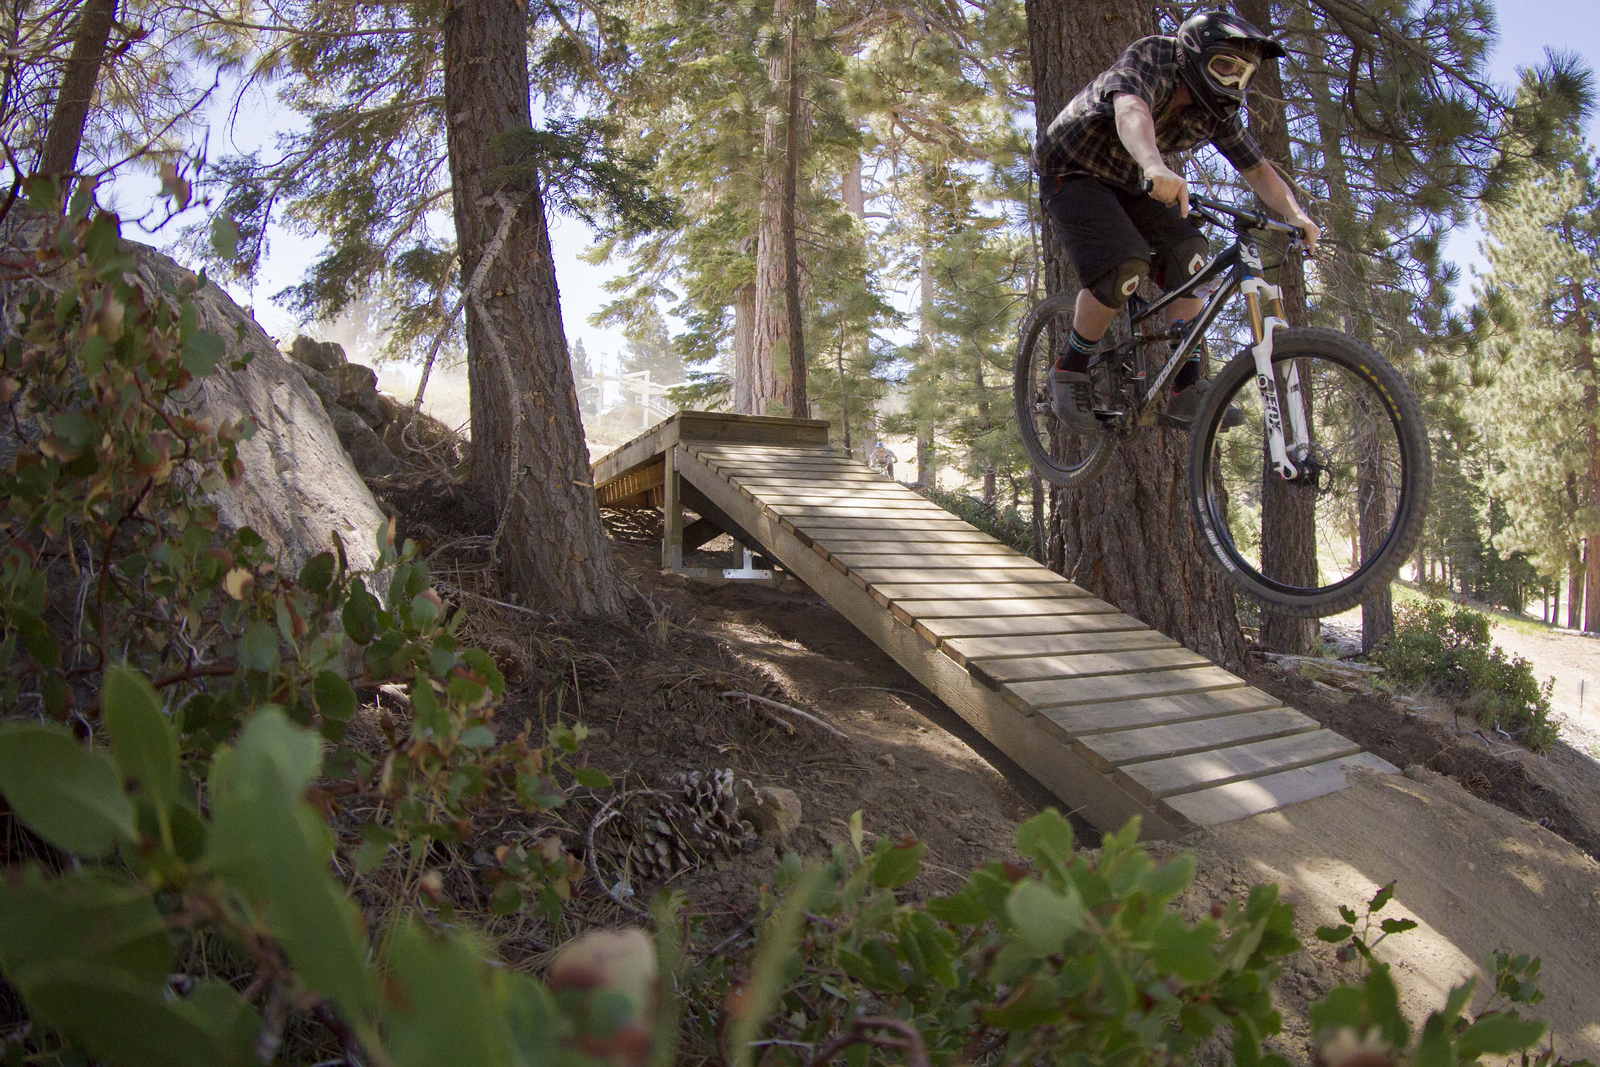 news: snow summit mountain resort in big bear, ca opens dh mtb park